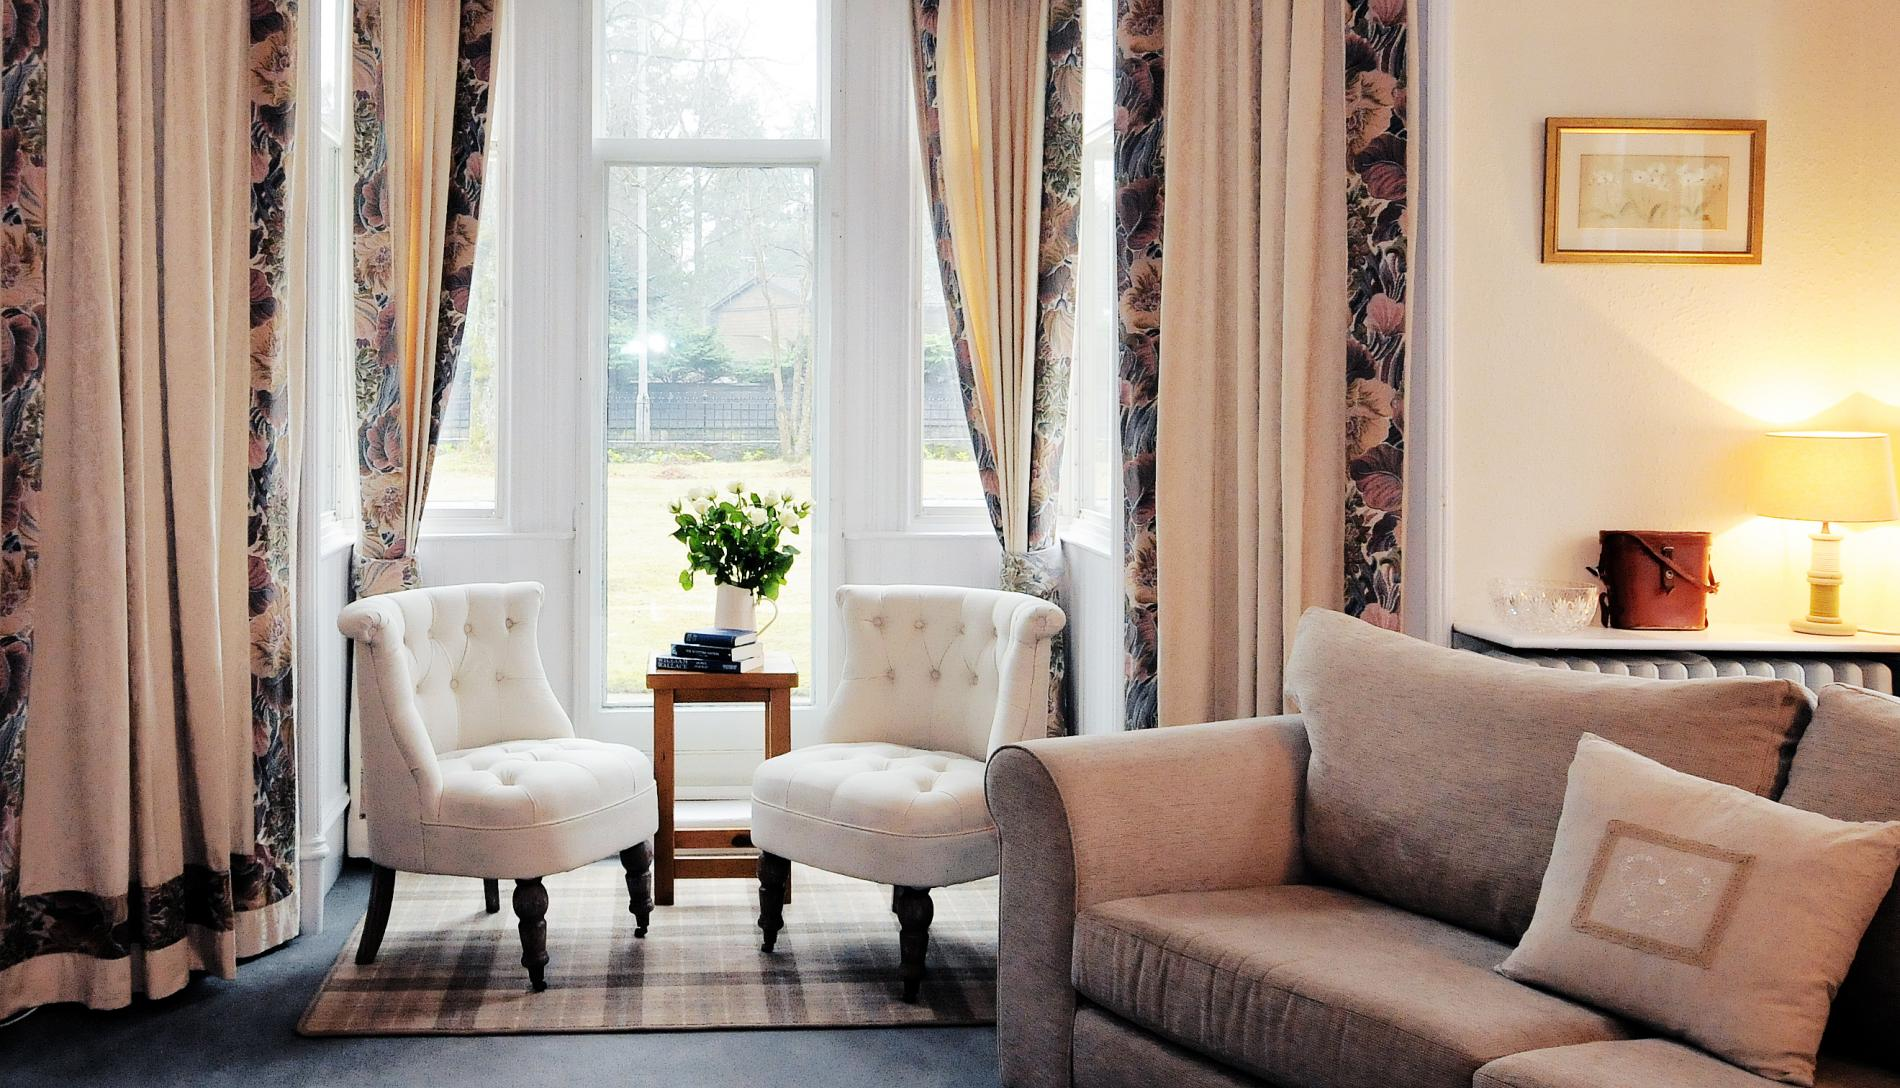 Stay At Gold Award Struan Hall Guest House On Royal Deeside